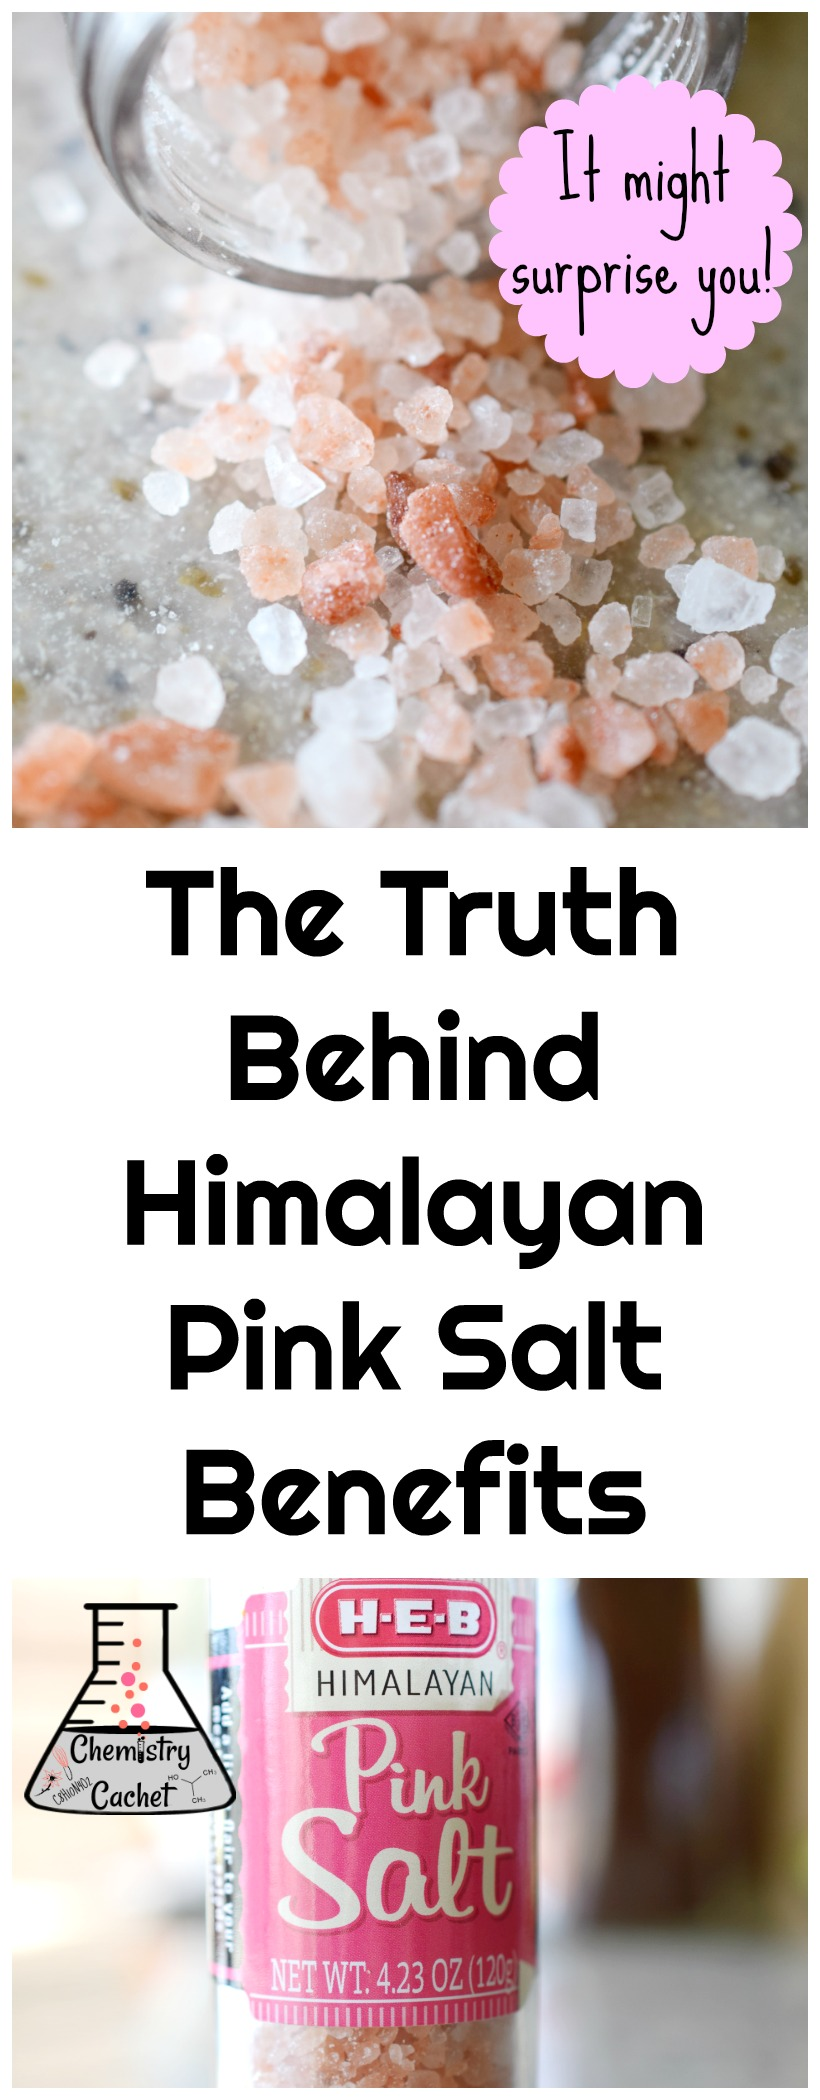 The Truth Behind Himalayan Pink Salt Benefits. This might surprise you! Most people think it's good for you, but is it on chemistrycachet.com #pinksalt #himalayanpinksalt